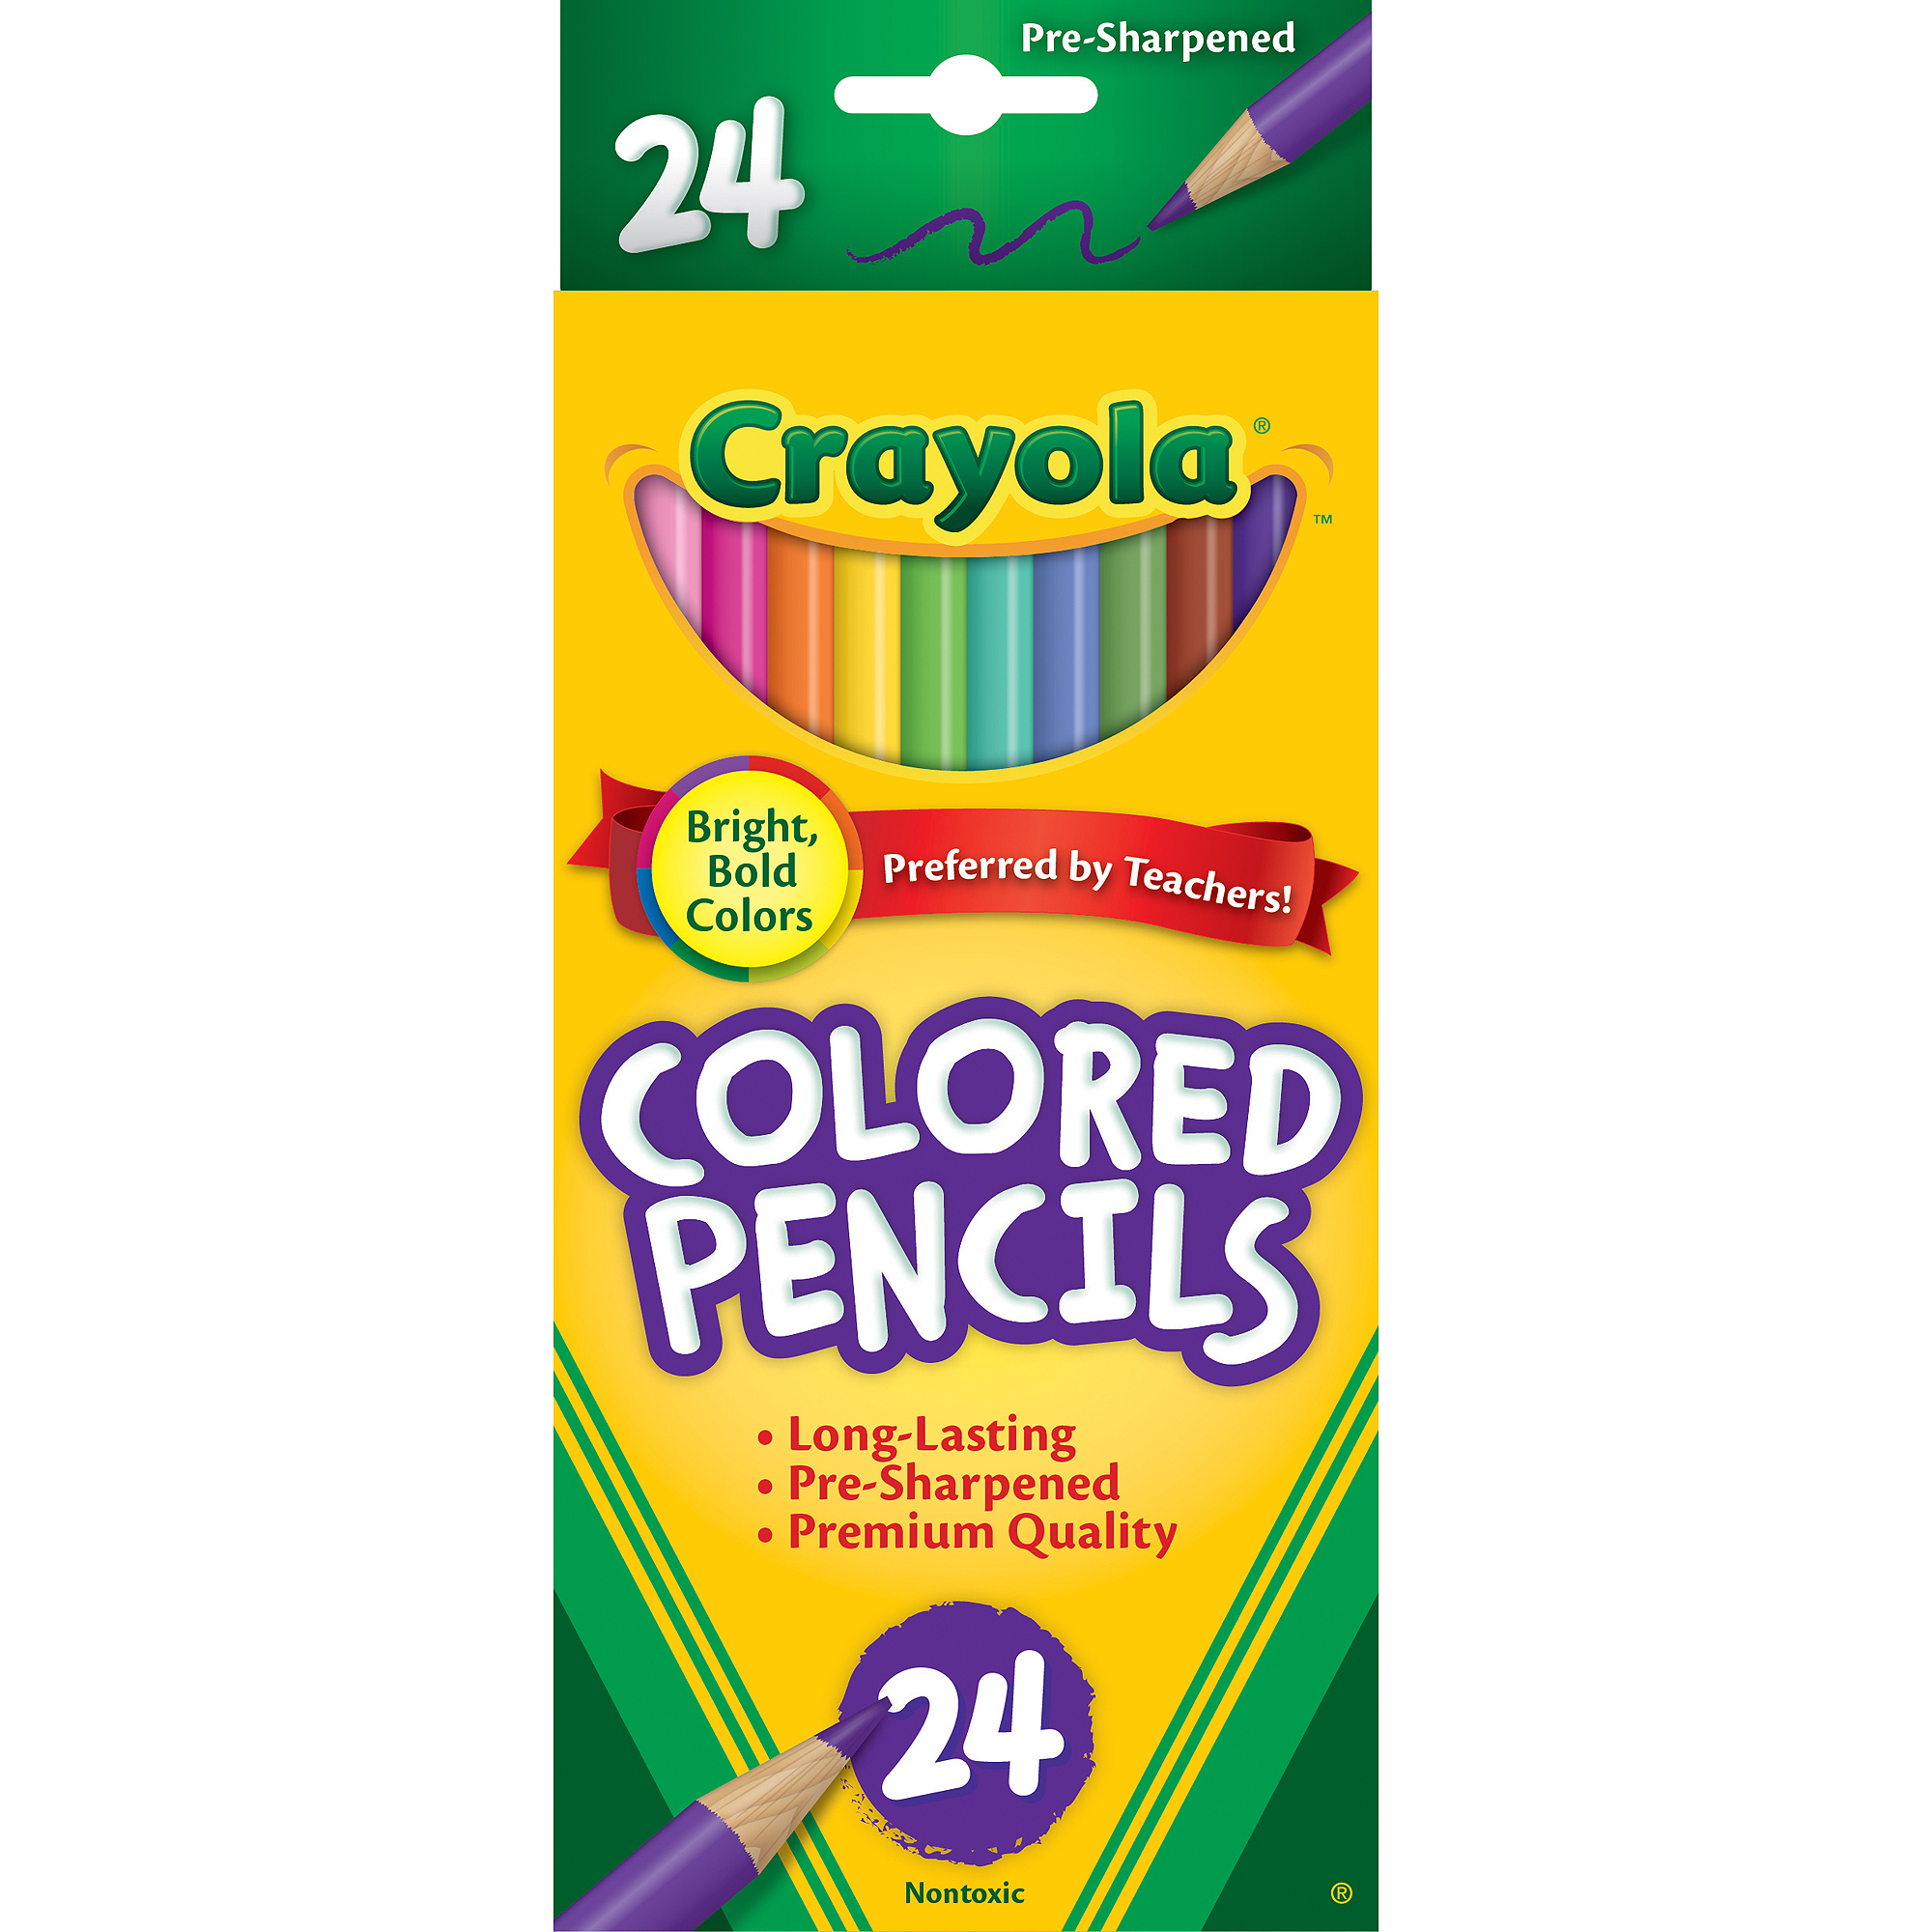 Crayola Long Barrel Colored Woodcase Pencils, Pre-sharpened 24-Count